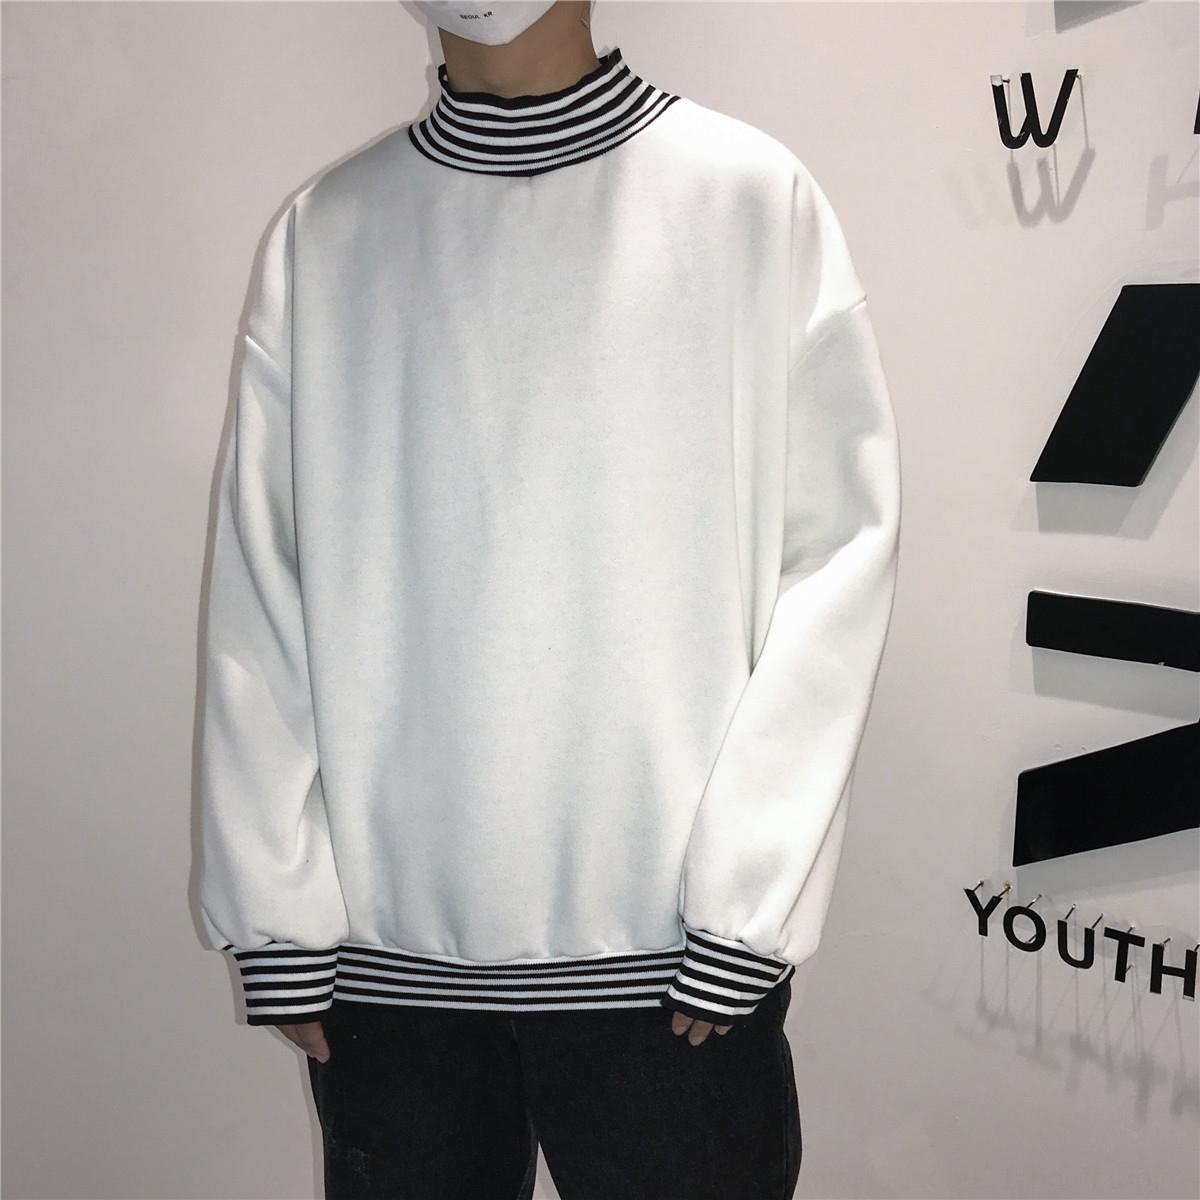 Autumn and winter men's high-collar striped long-sleeved sweater pullover Top pullover youth loose top trendy casual coat